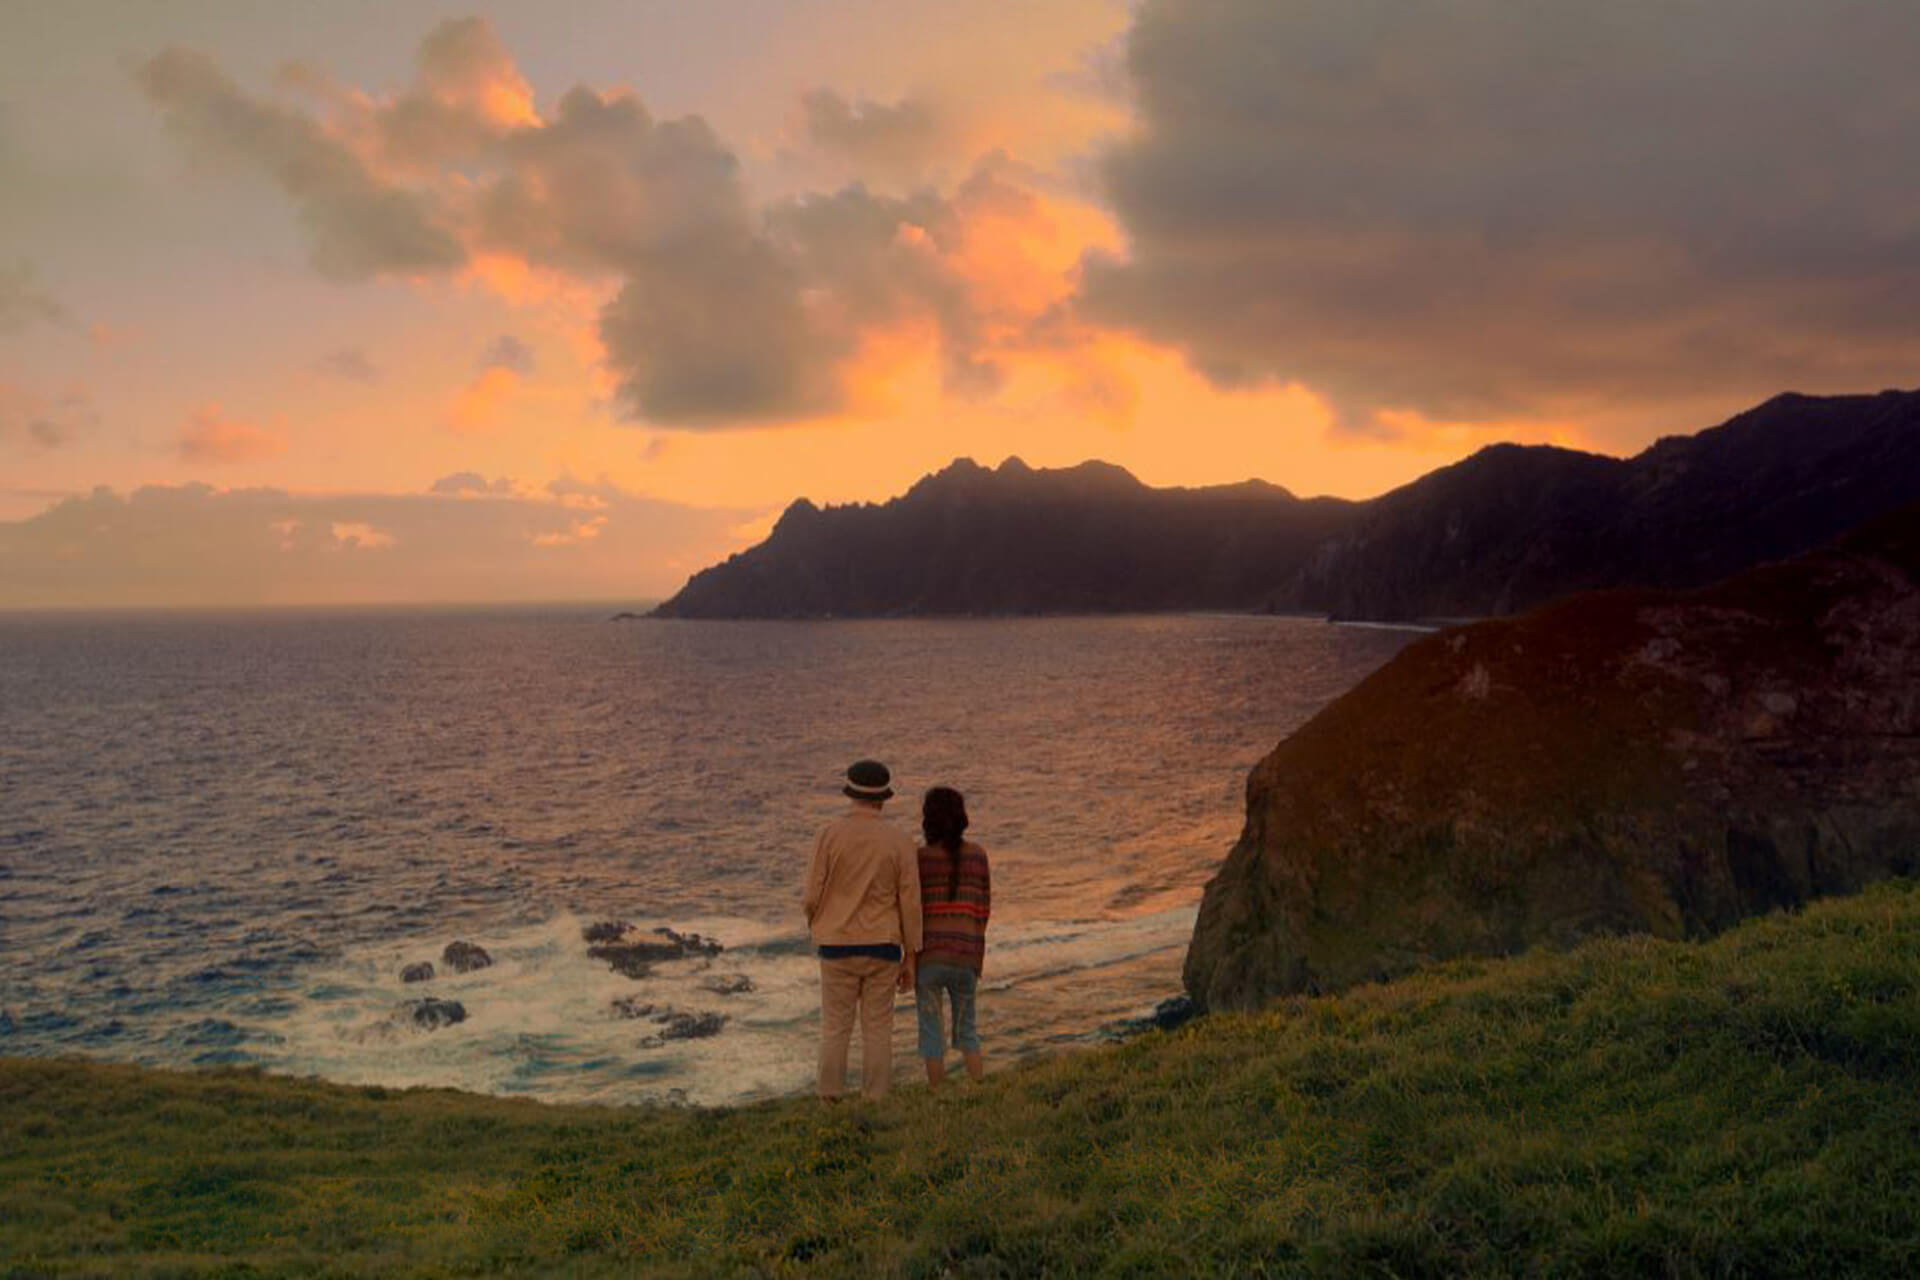 Sol and Benjie overlooking the horizon by the beach